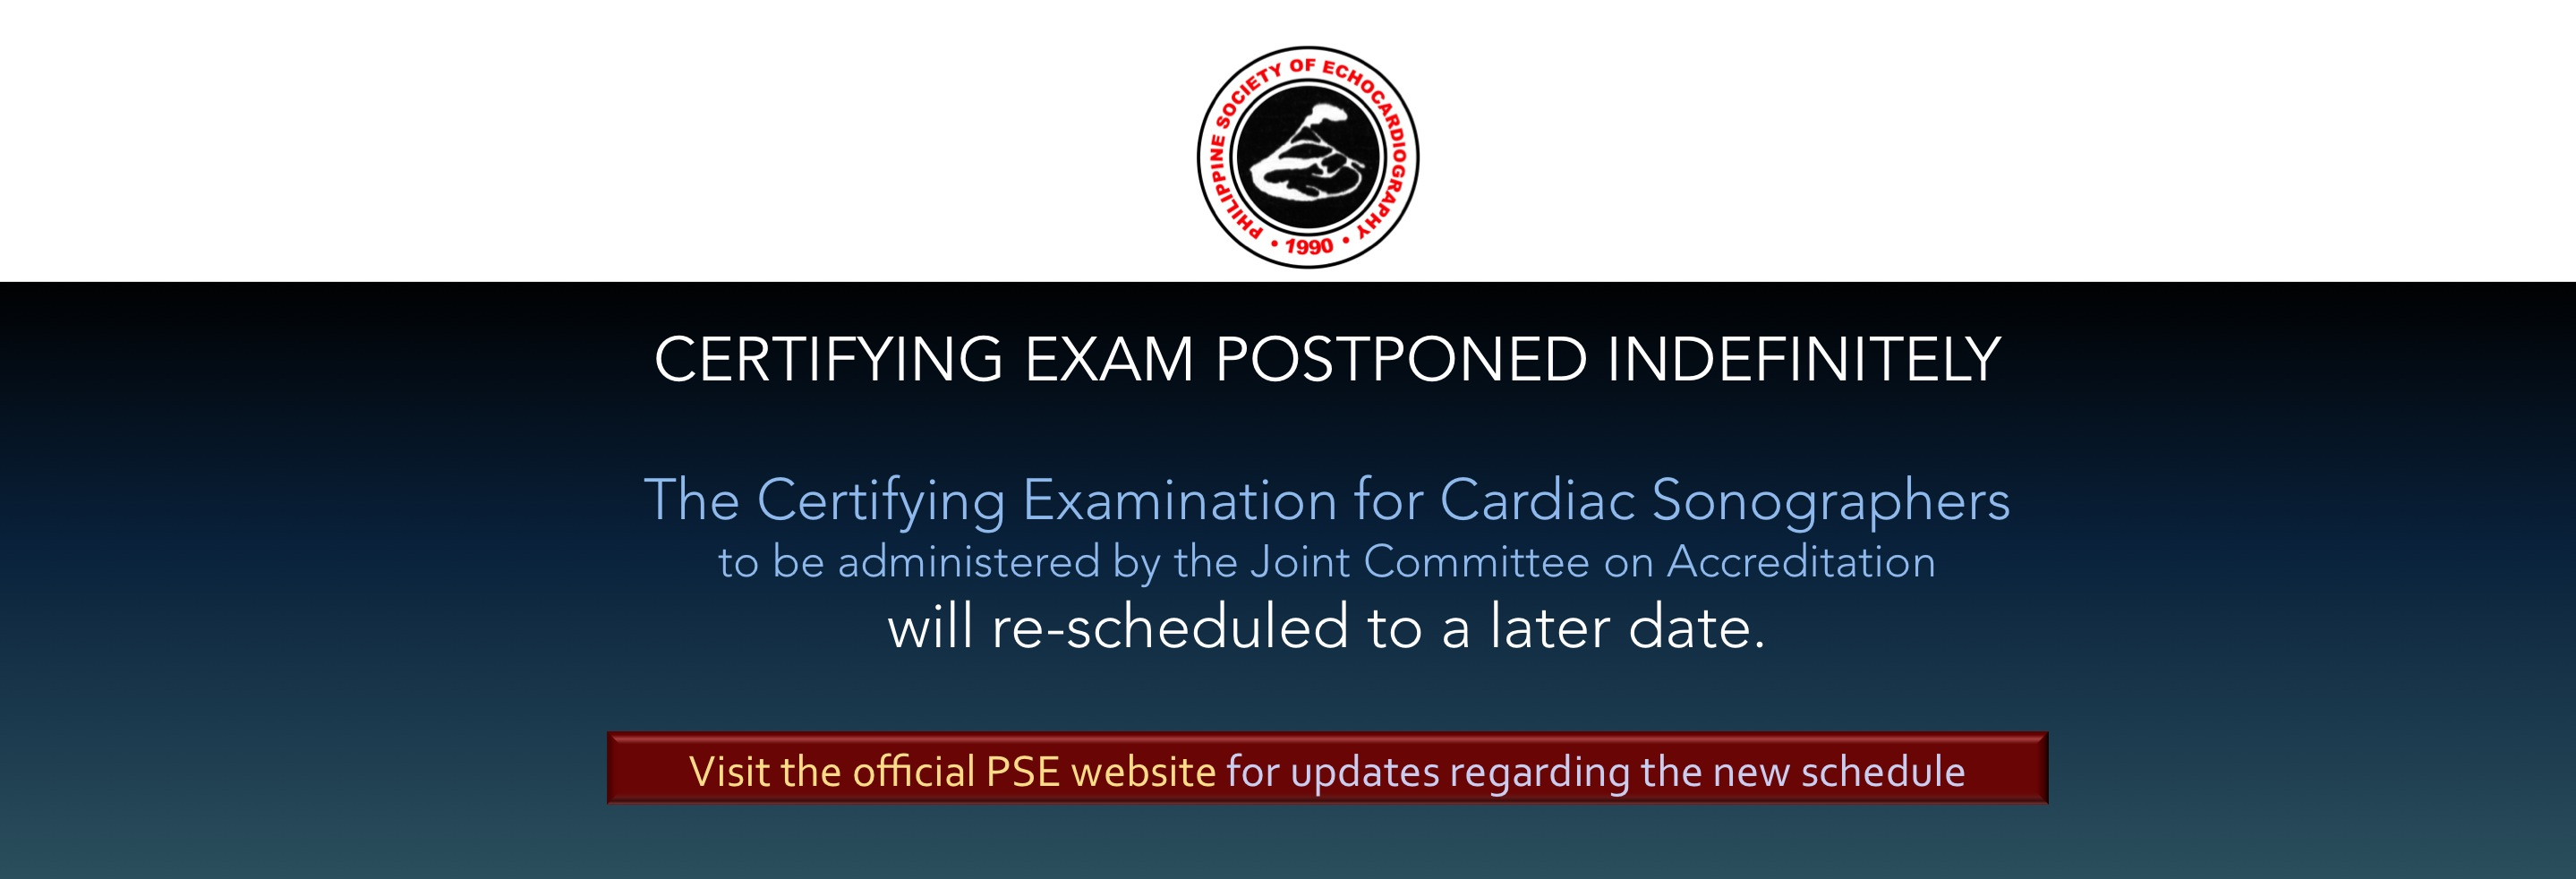 sonoexampostponed